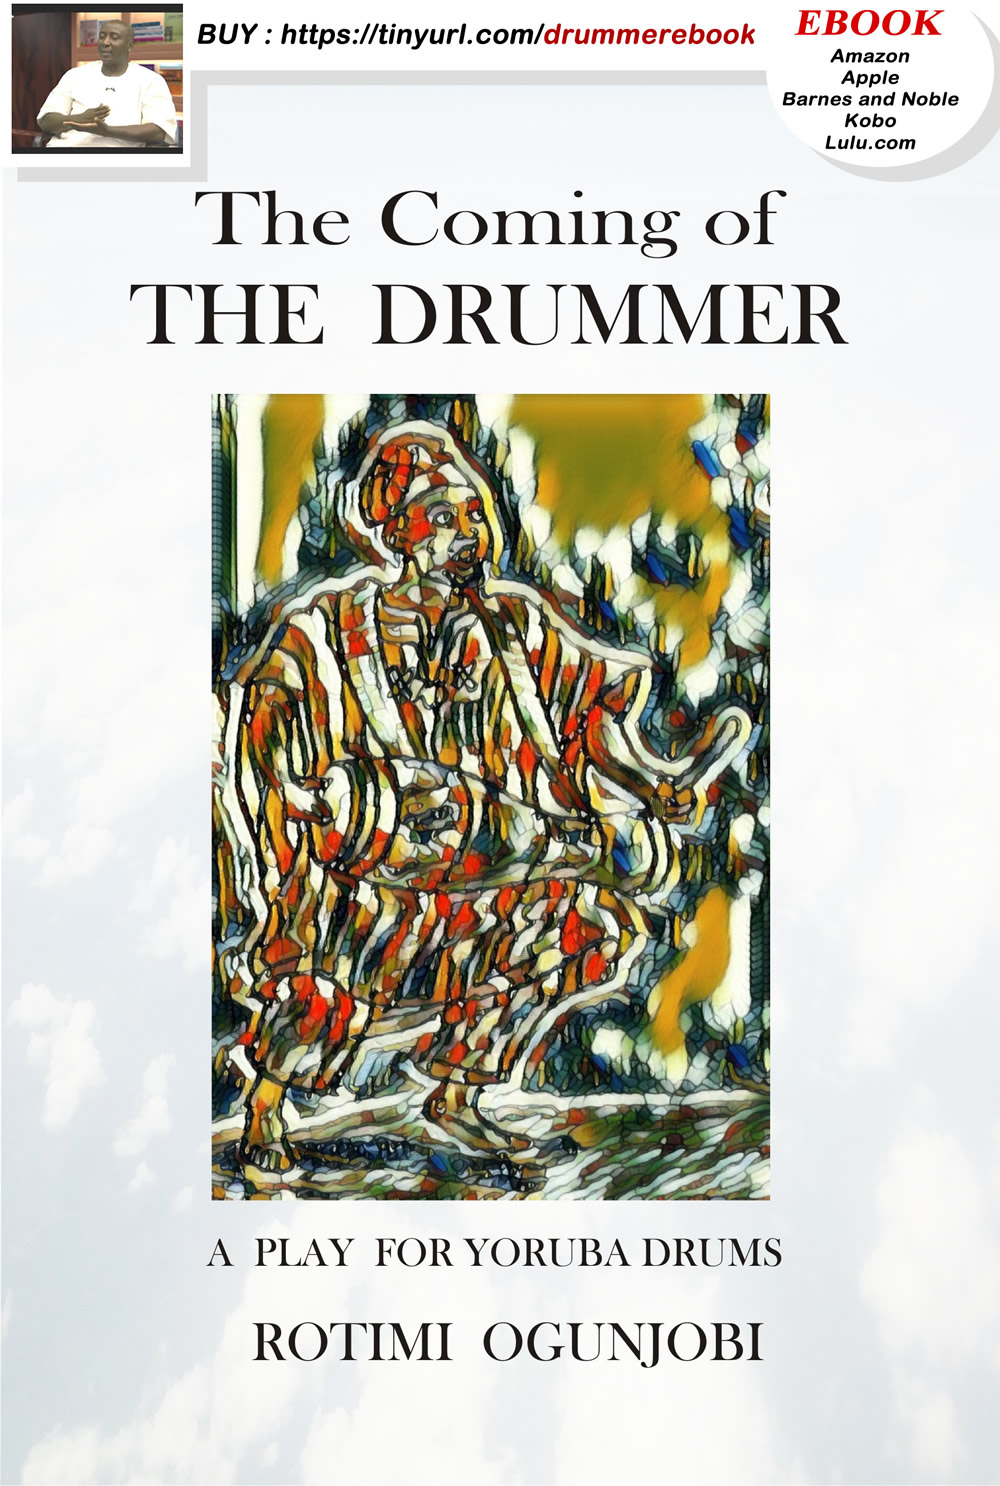 The Coming of the Drummer 3